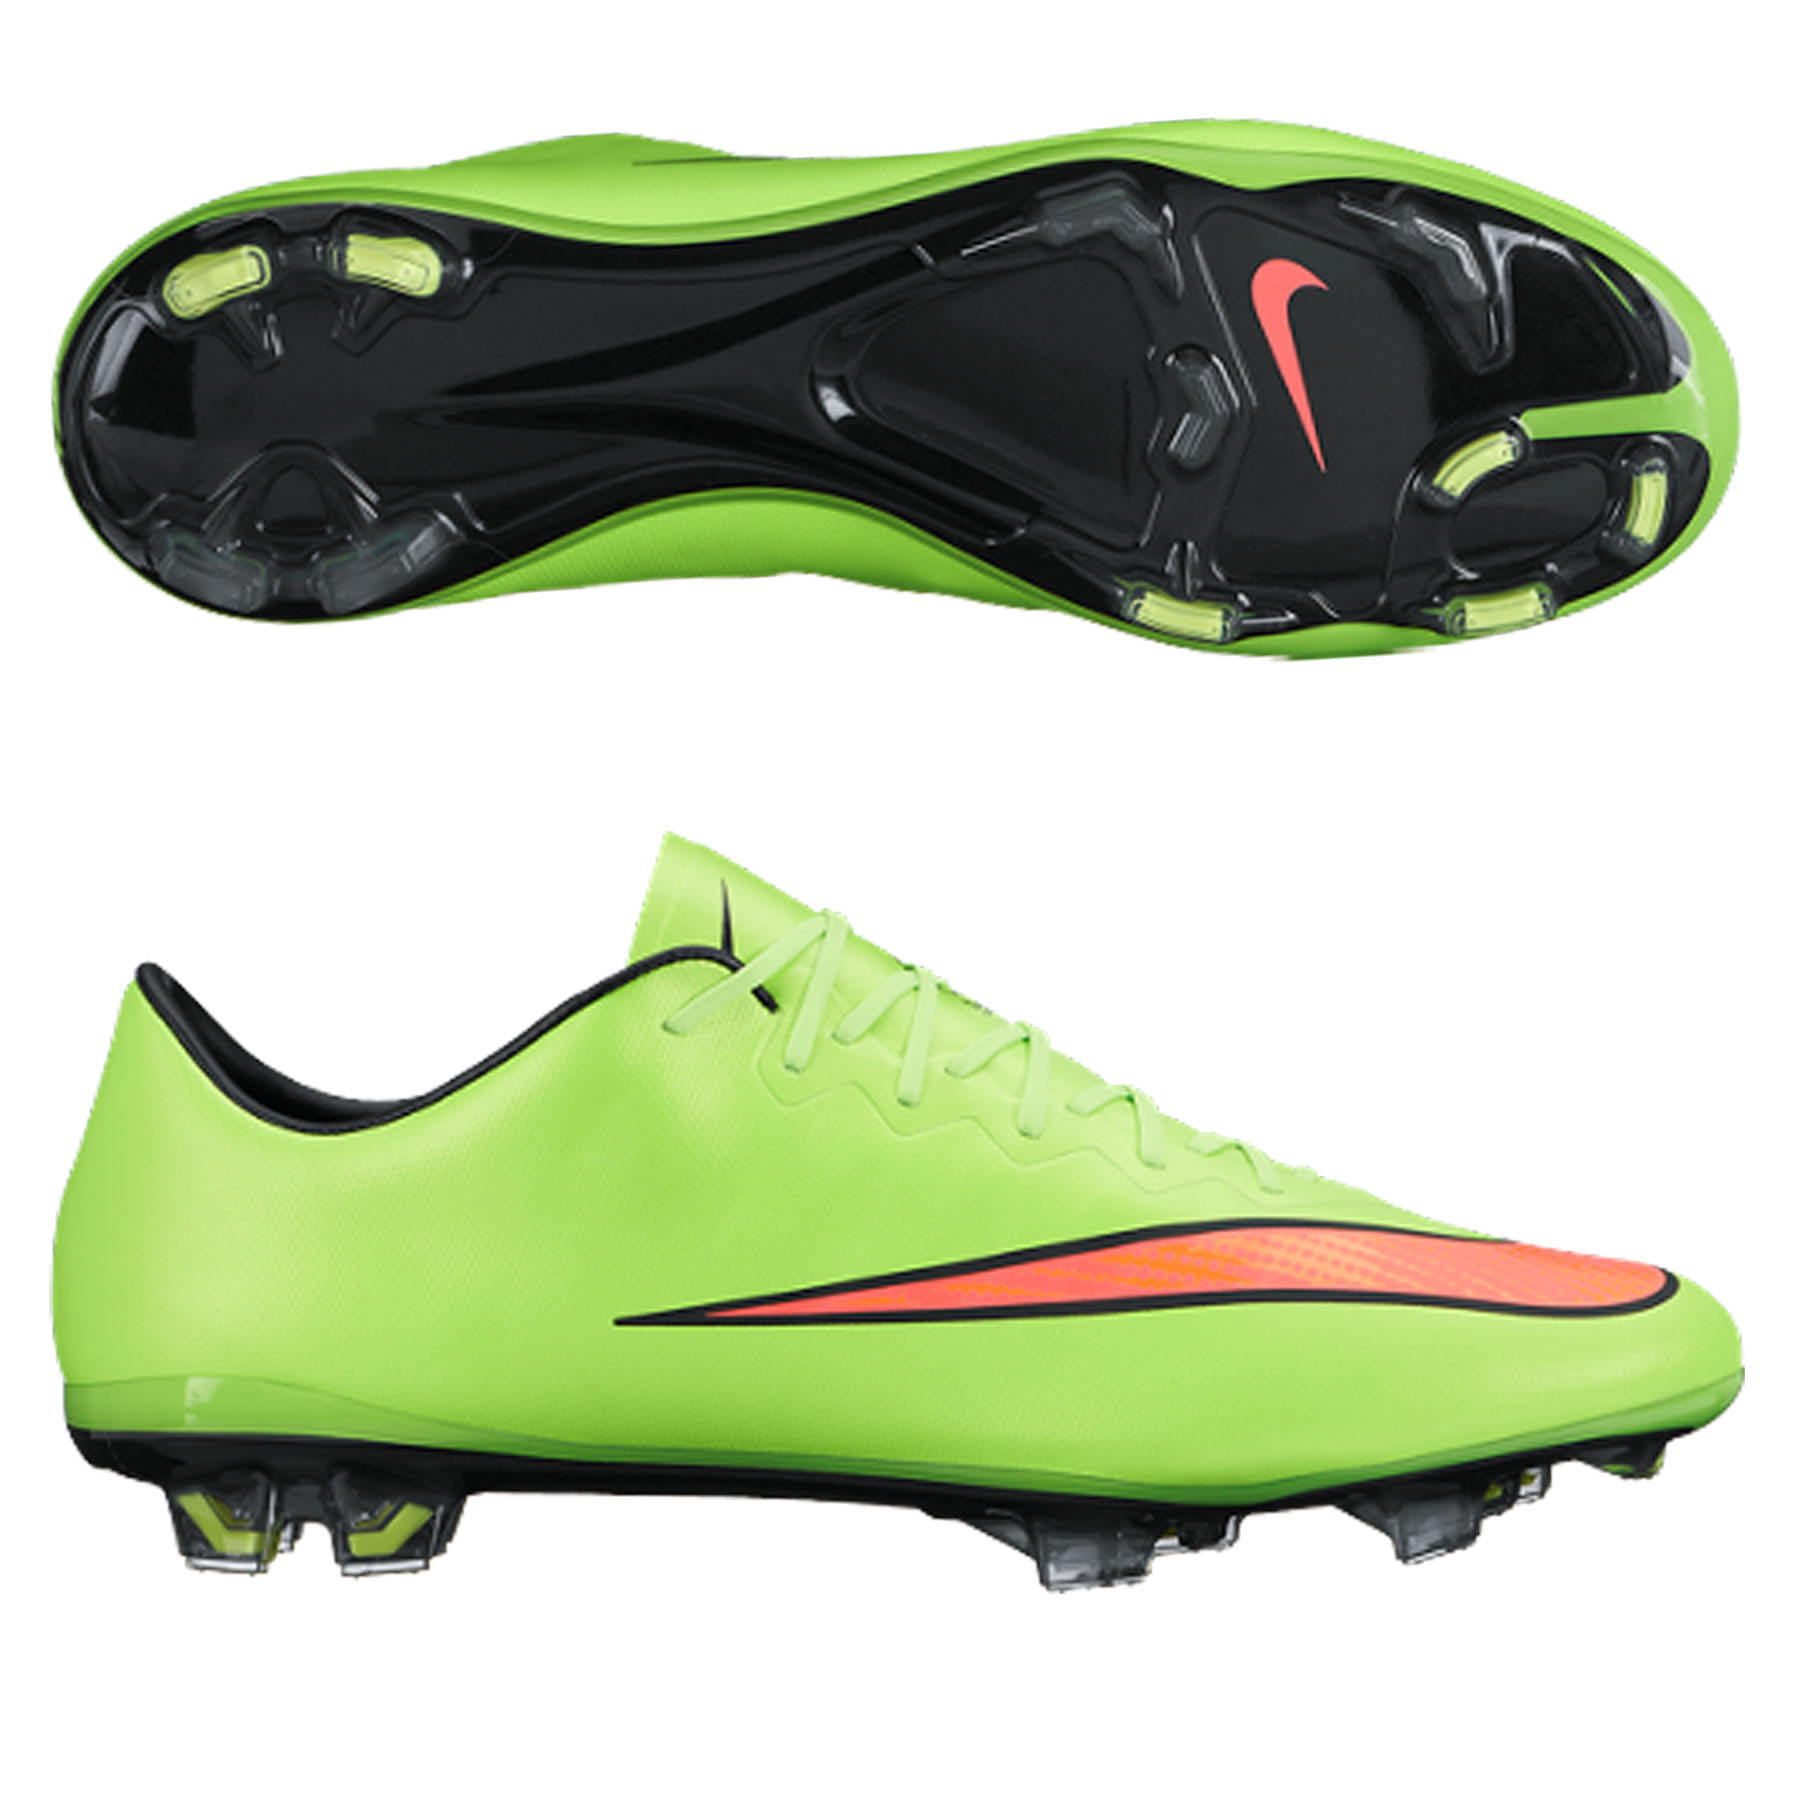 Nike Mercurial Vapor X Firm Ground Football Boot Green